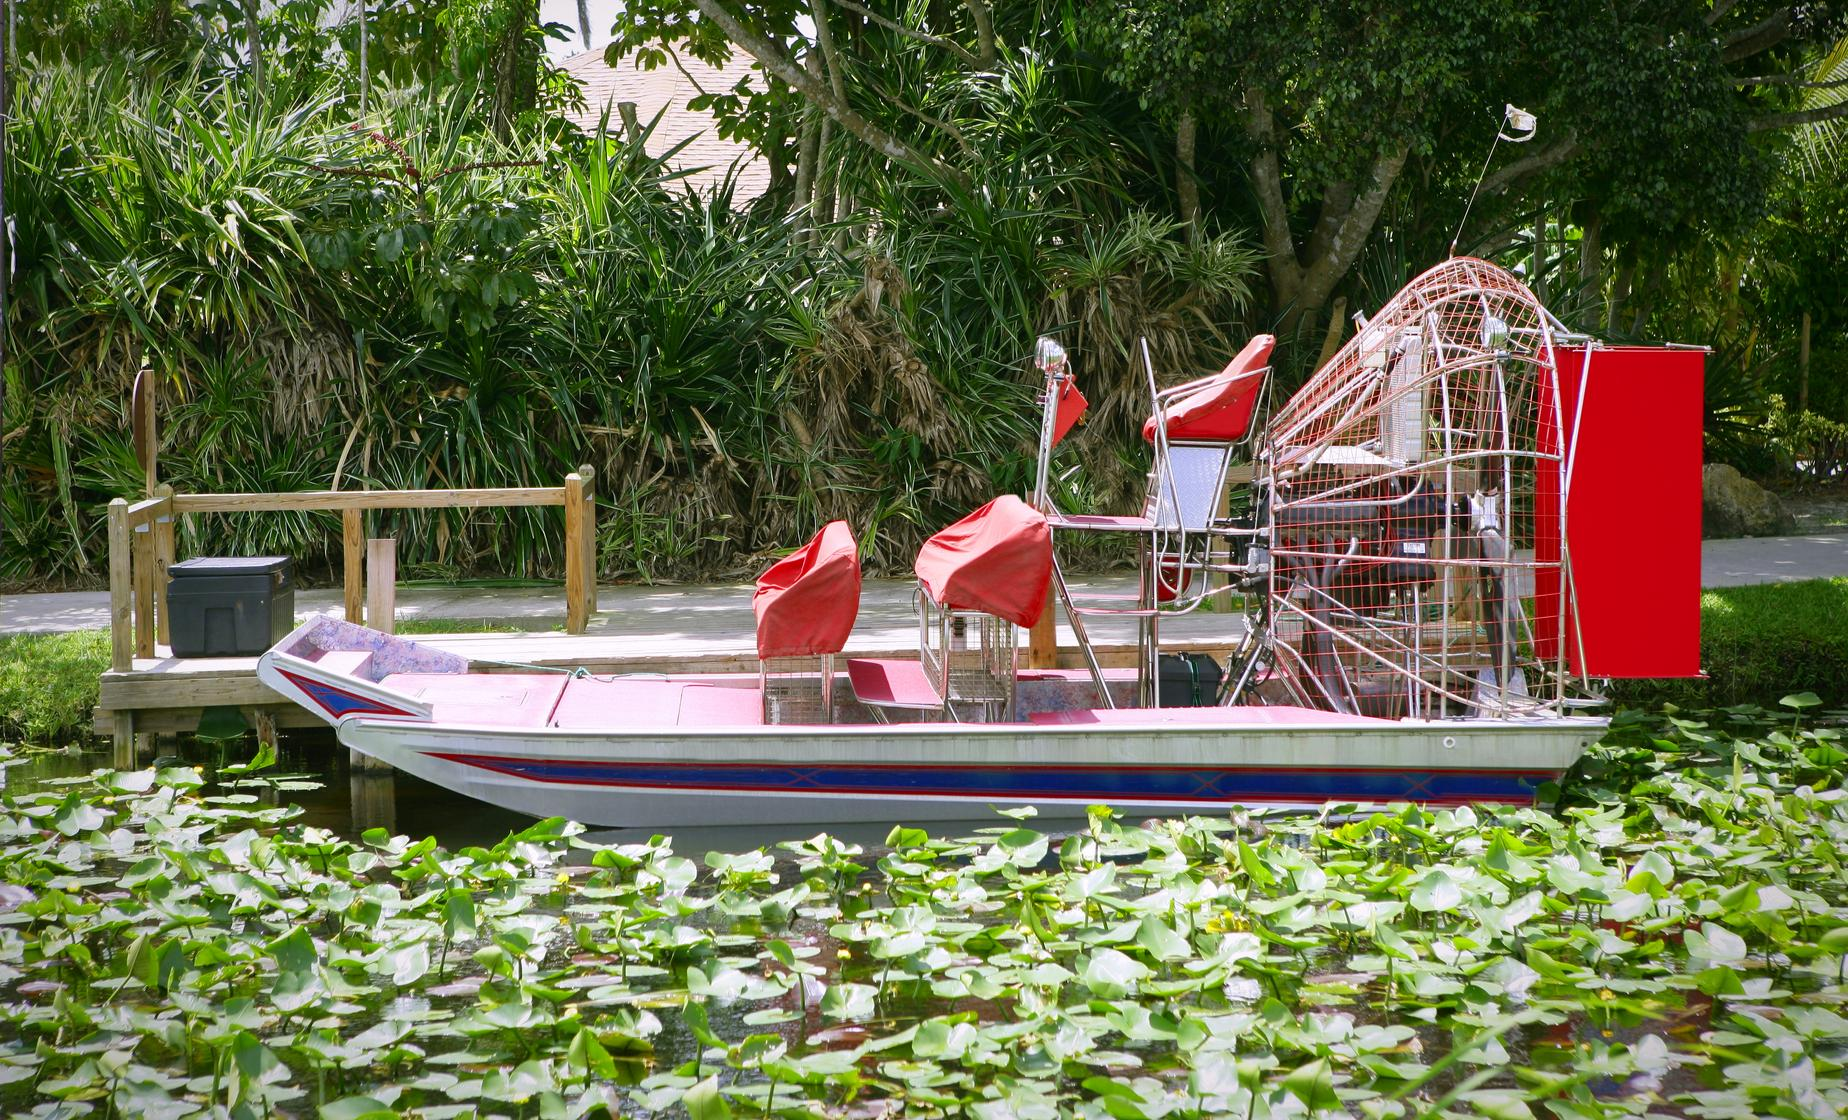 Orlando Airboat Adventure through the Everglades in Florida